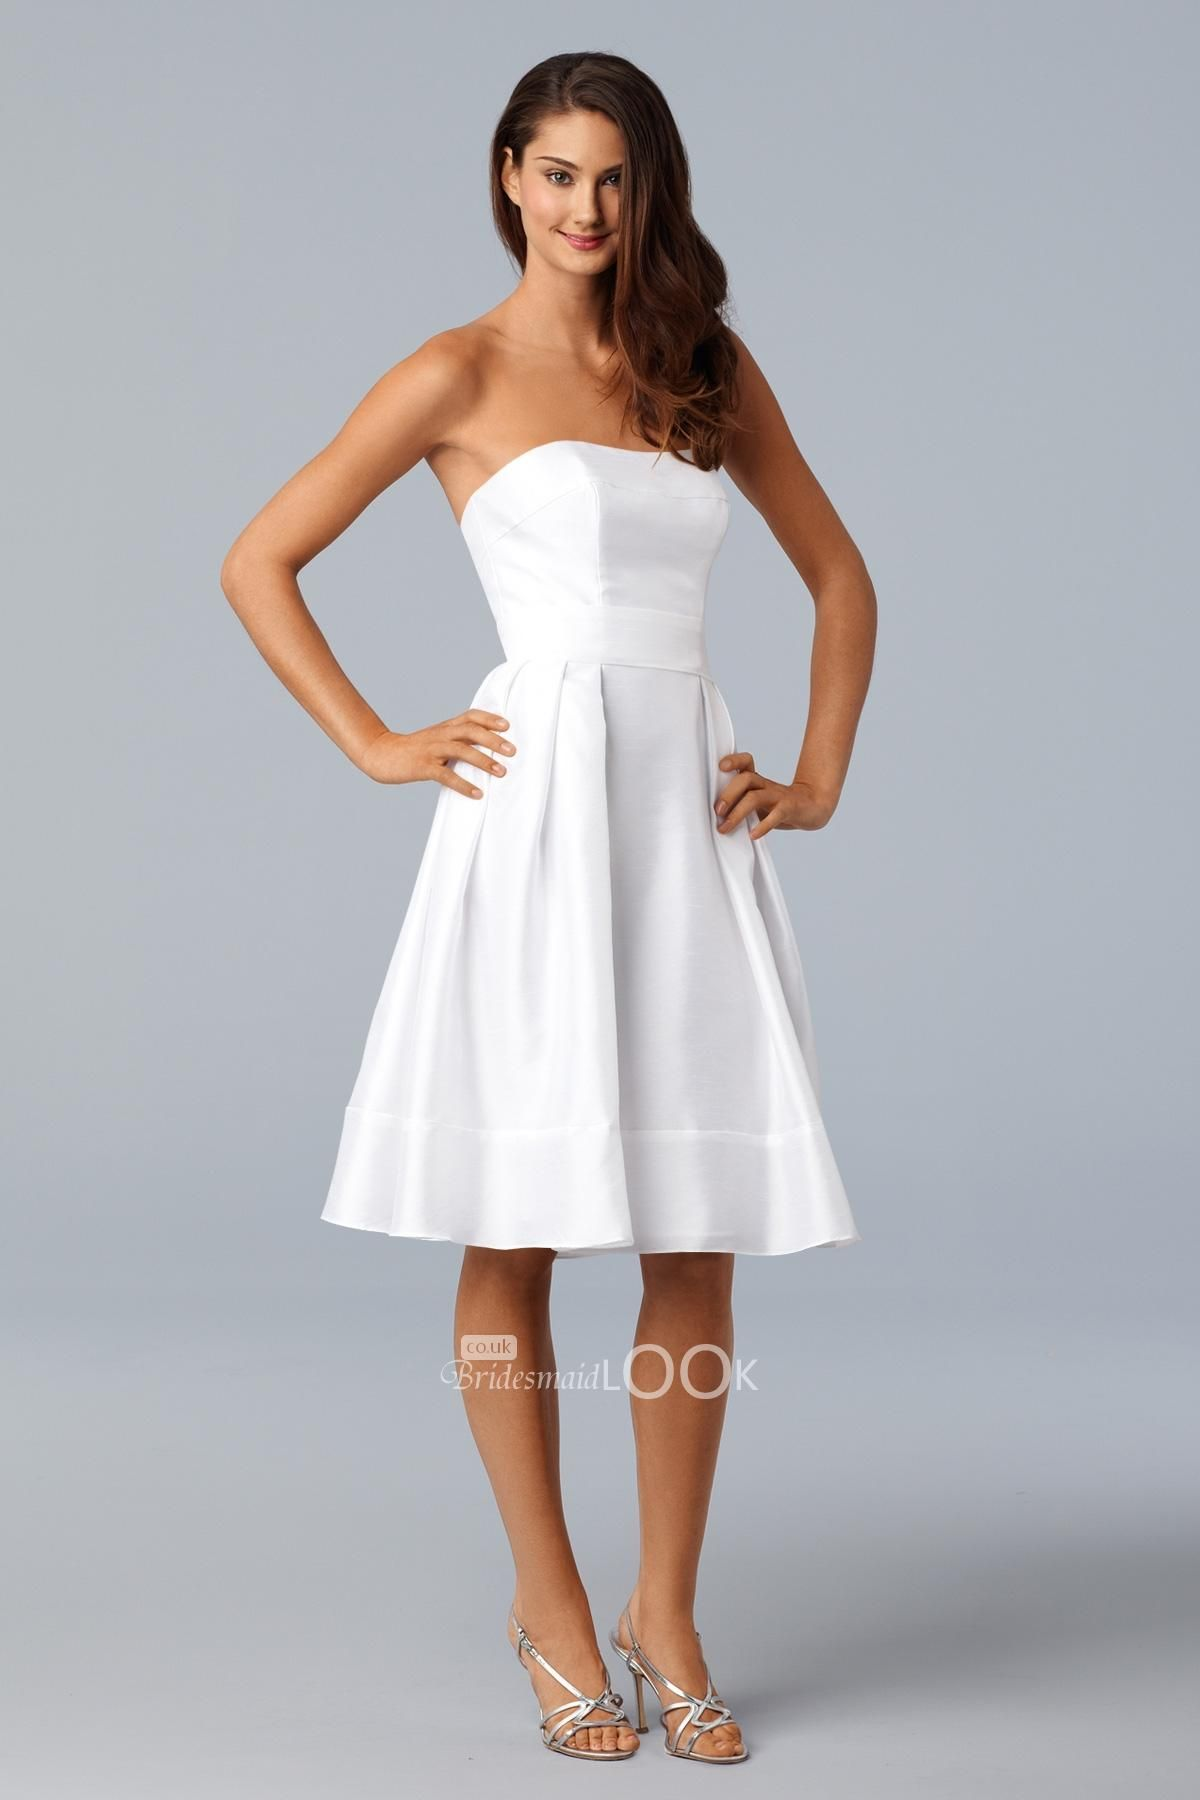 Strapless off white mini bridesmaid ball gown for my bridesmaids